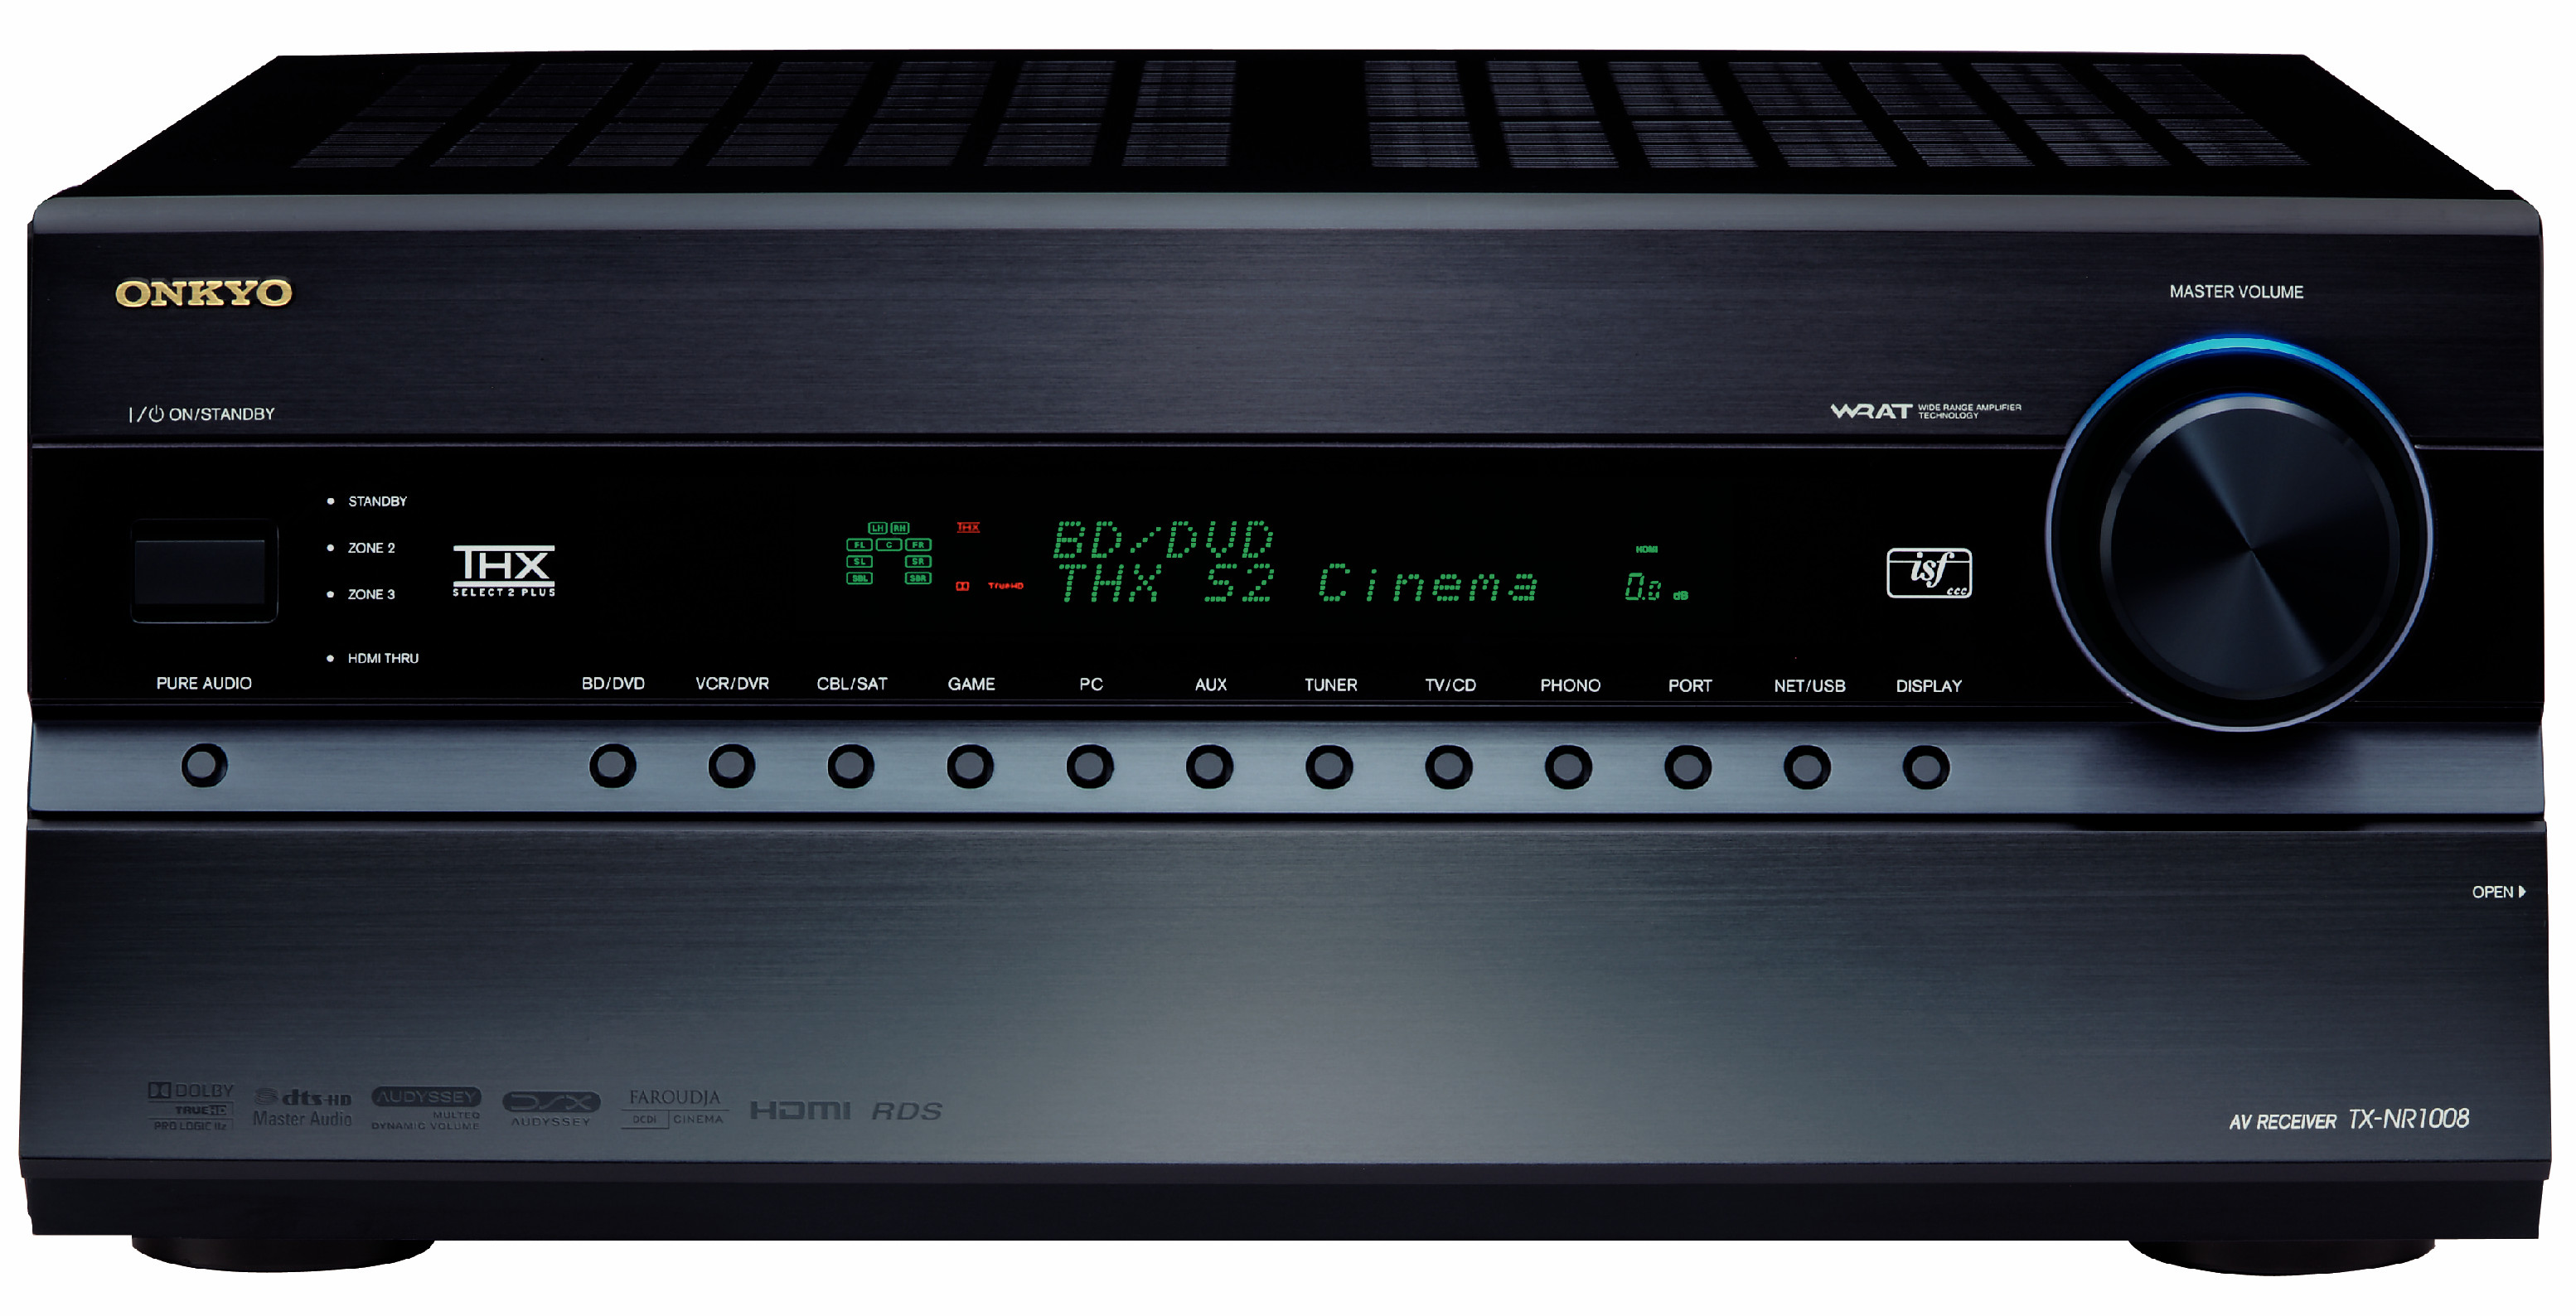 Onkyo launches three new 3D and iPod compatible Network